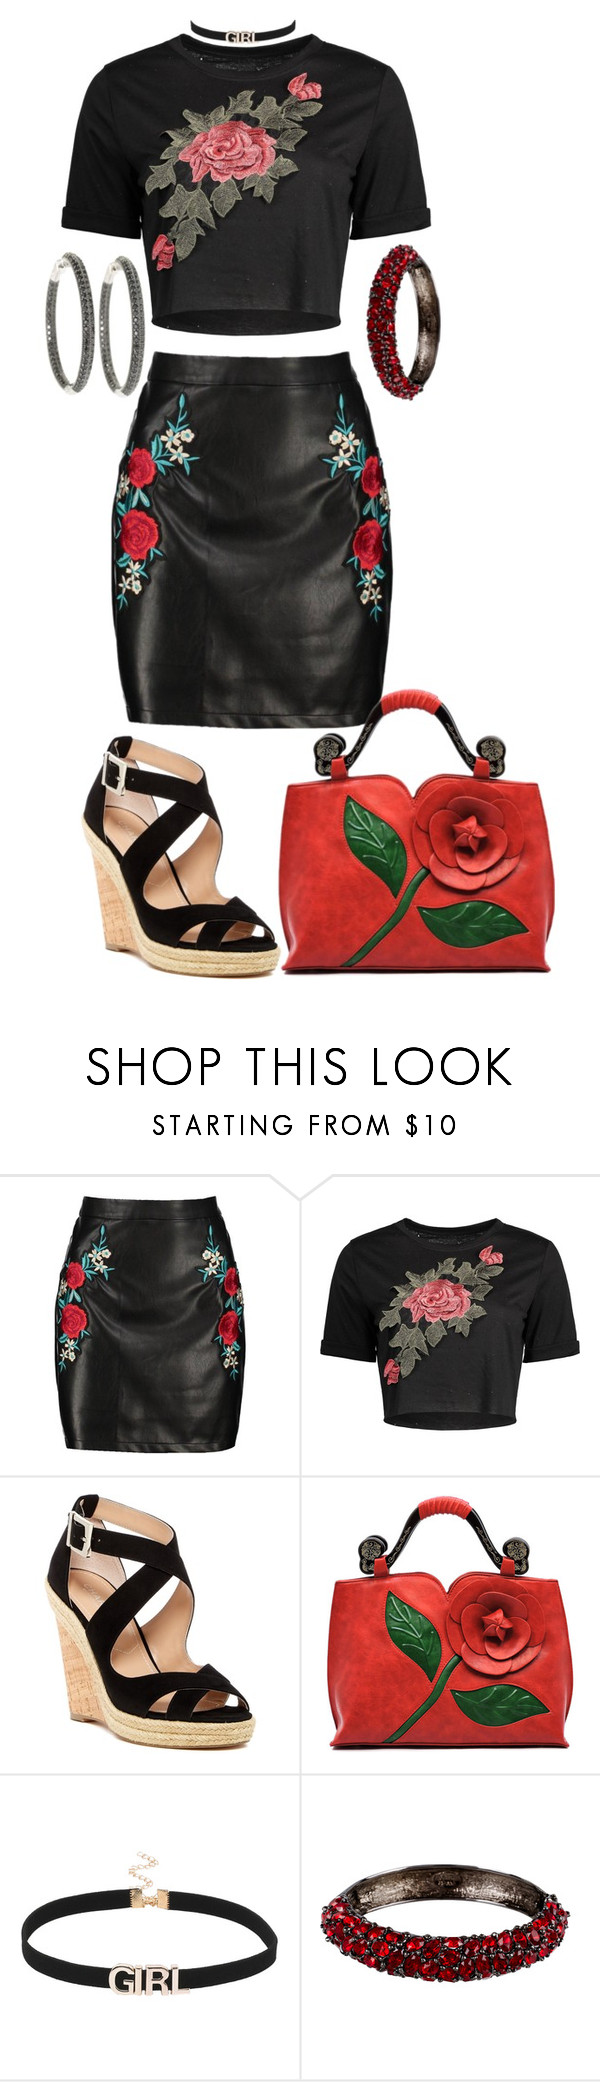 """One of a Kind"" by shirley-de-gannes ❤ liked on Polyvore featuring Boohoo, Charles by Charles David and Kenneth Jay Lane"